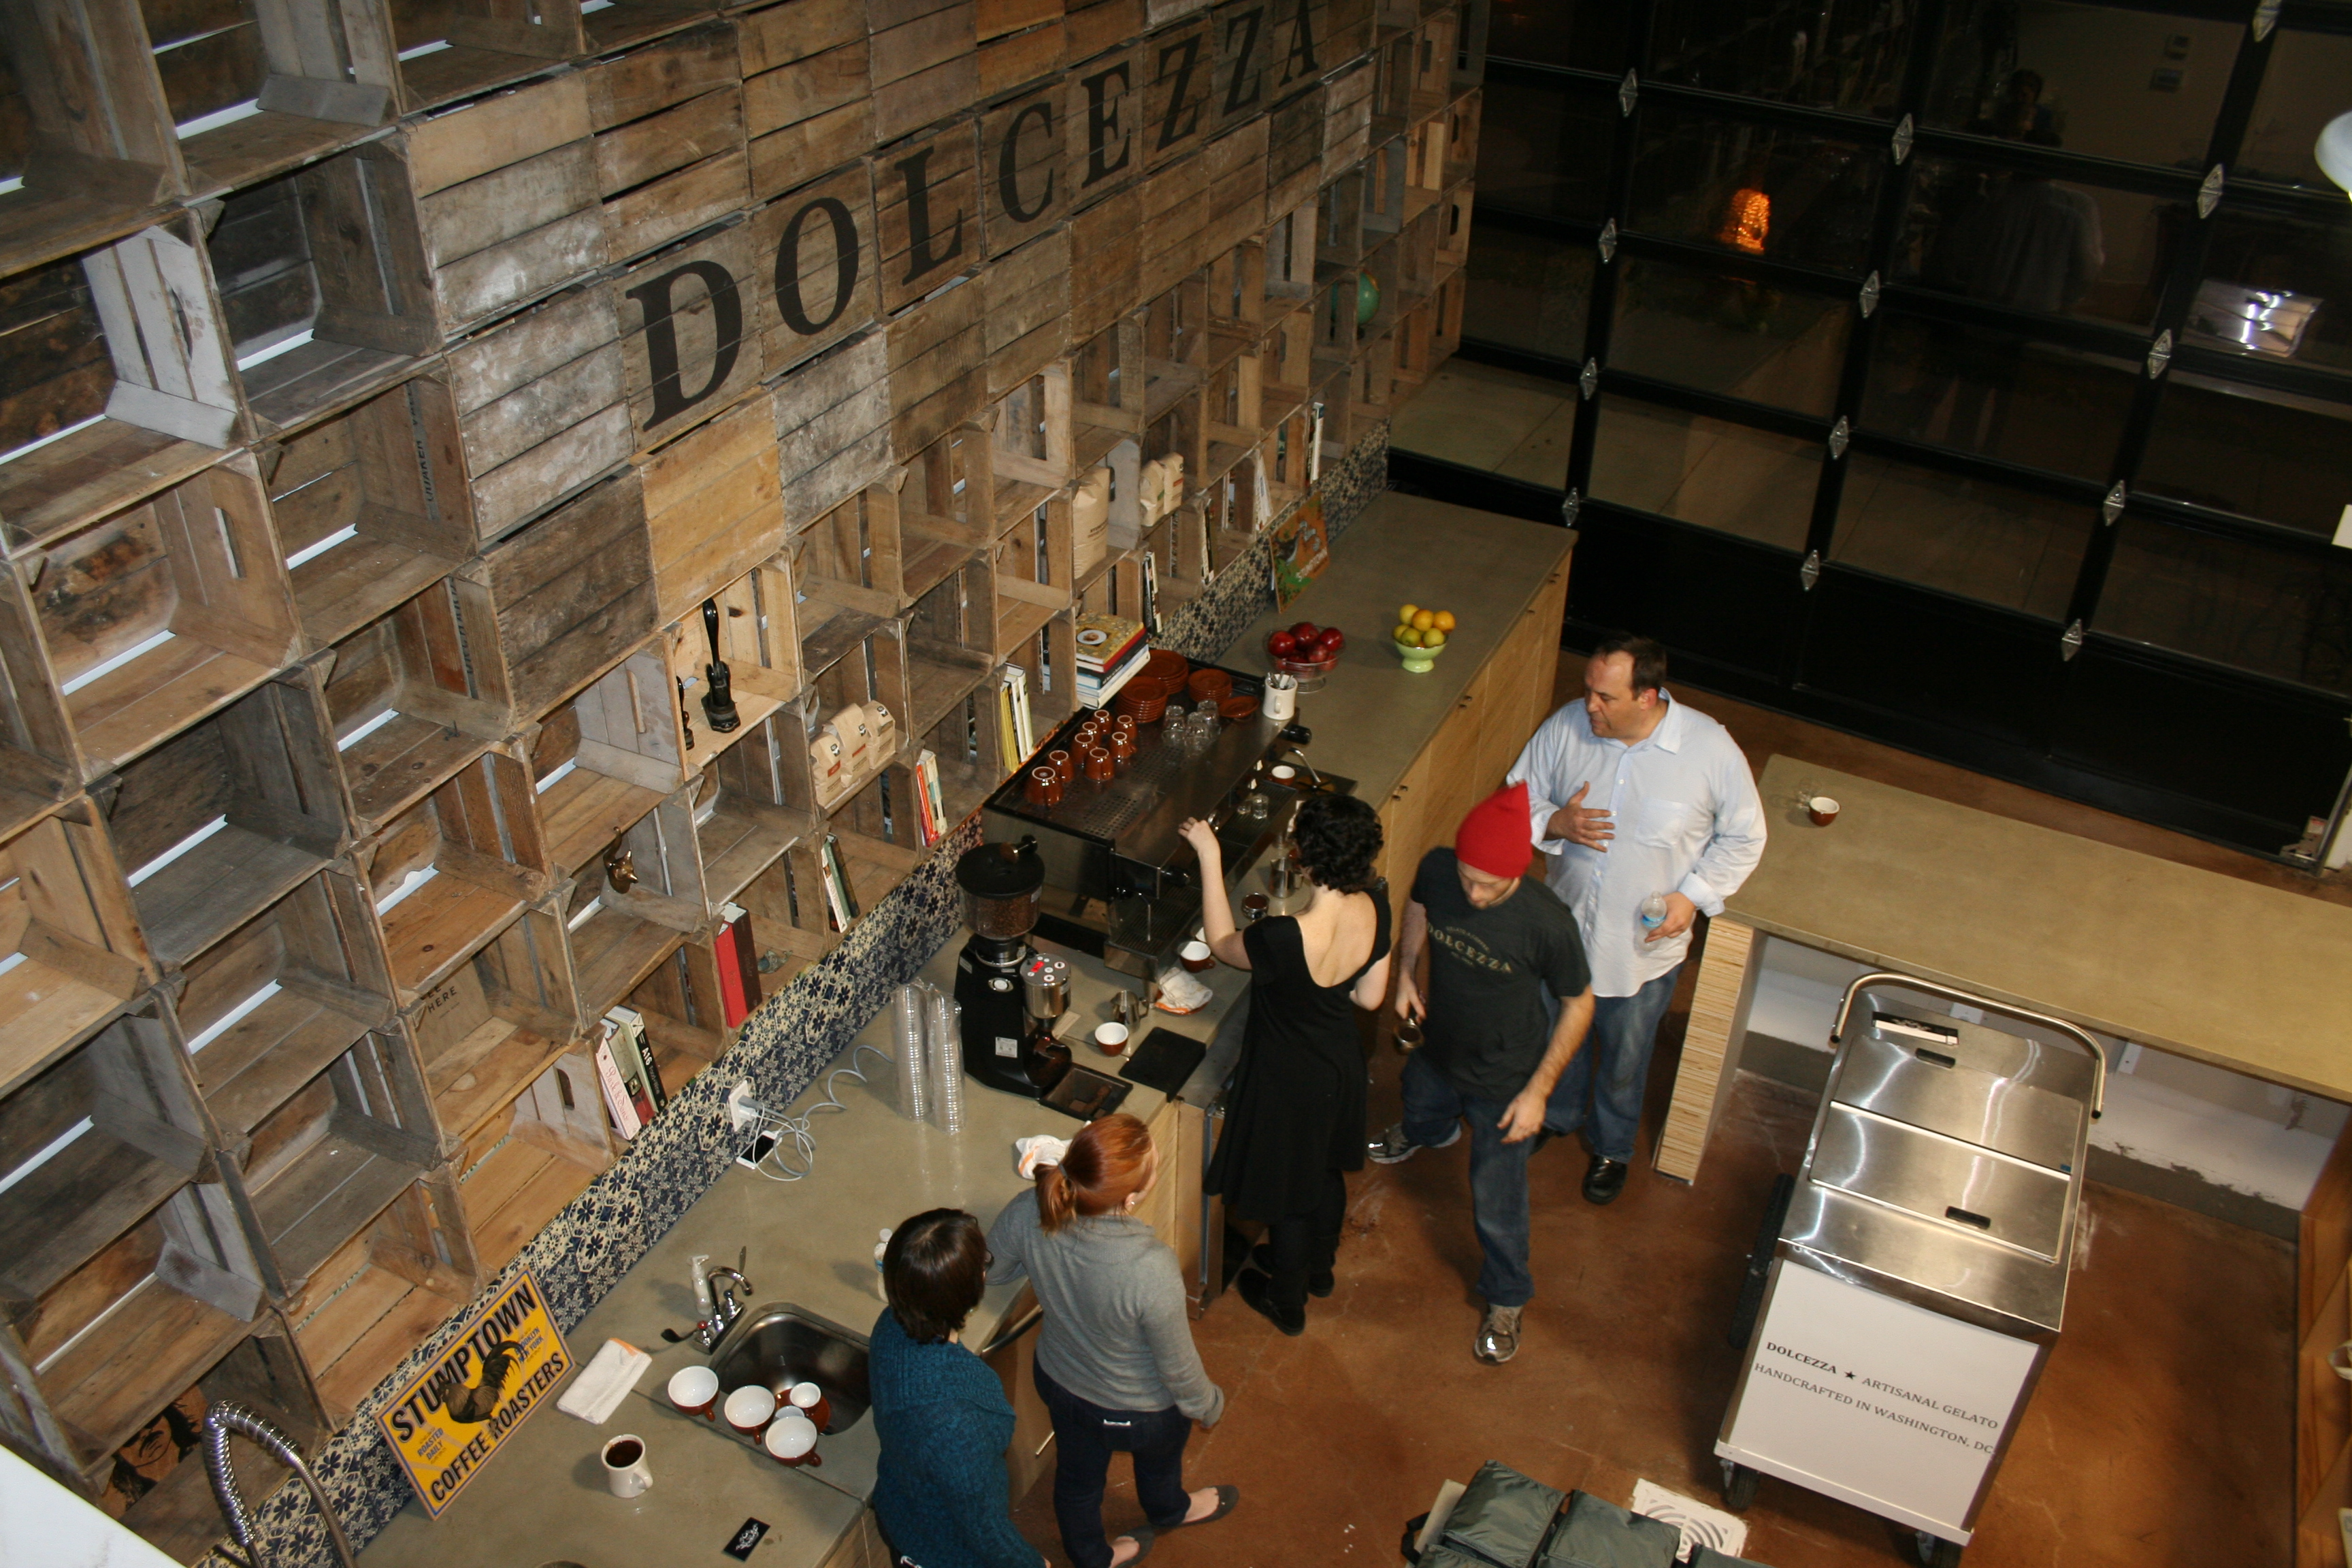 Employees at Dolcezza's new coffee lab. (Photo: Mark Heckathorn/DC on Heels)